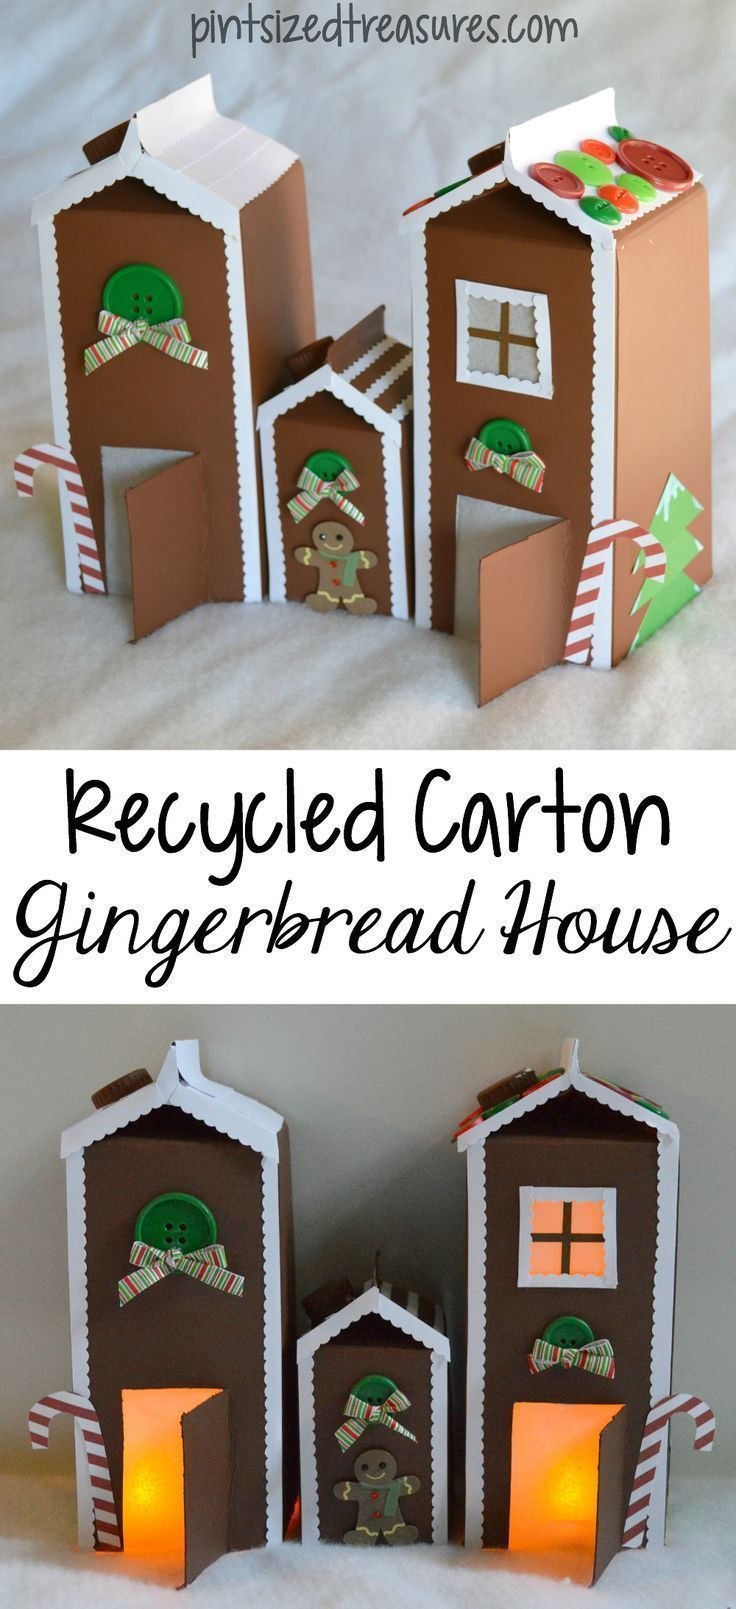 Easy paper gingerbread house made from recyclables! This paper gingerbread house uses milk or juice cartons and construction paper to create a fun gingerbread scene! Complete this Christmas craft with buttons, ribbons and tea lights to make an adorable winter scene.  #Christmascrafts #gingerbread #gingerbreadcrafts #actvities #wintercrafts #kids #Christmasdecor #easycrafts #kidscraft #pintsizedtreasures